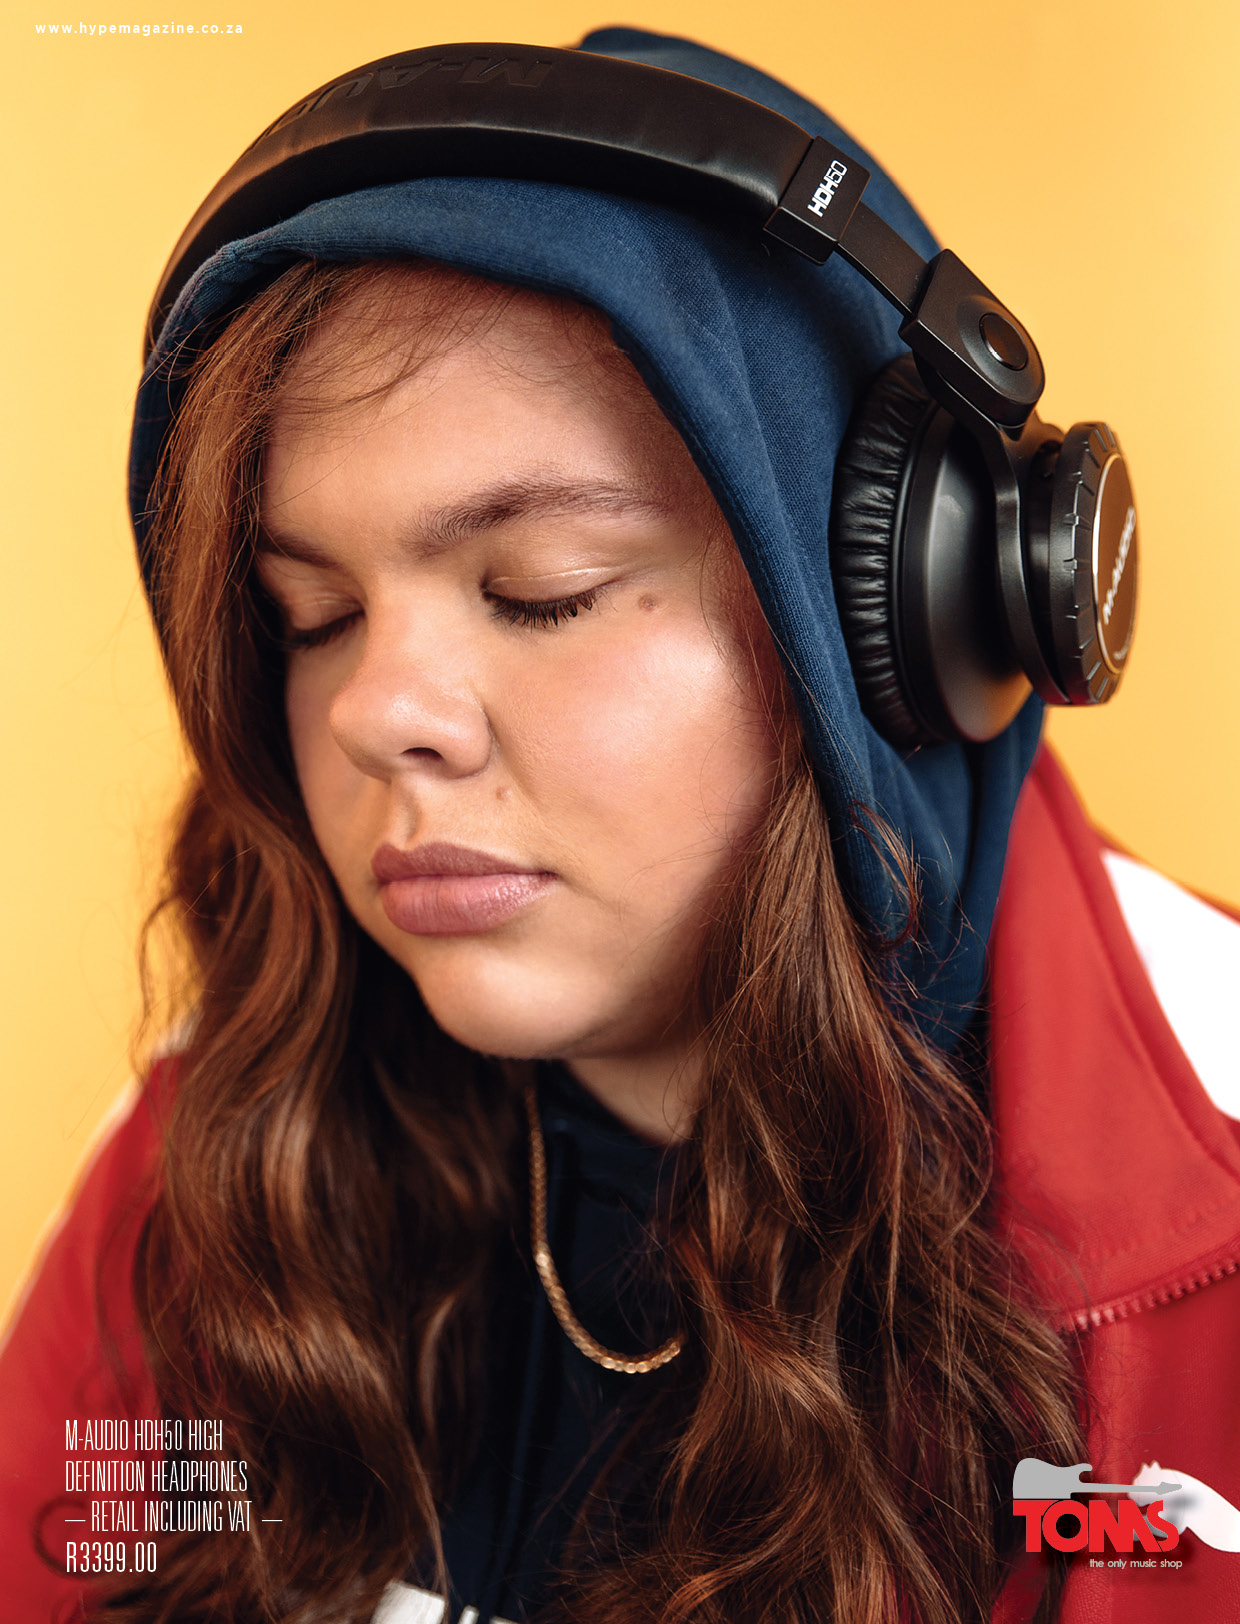 [object object] HYPE MAGAZINE x TOMS PRESENT: CHANGING SOUNDS Kay Faith